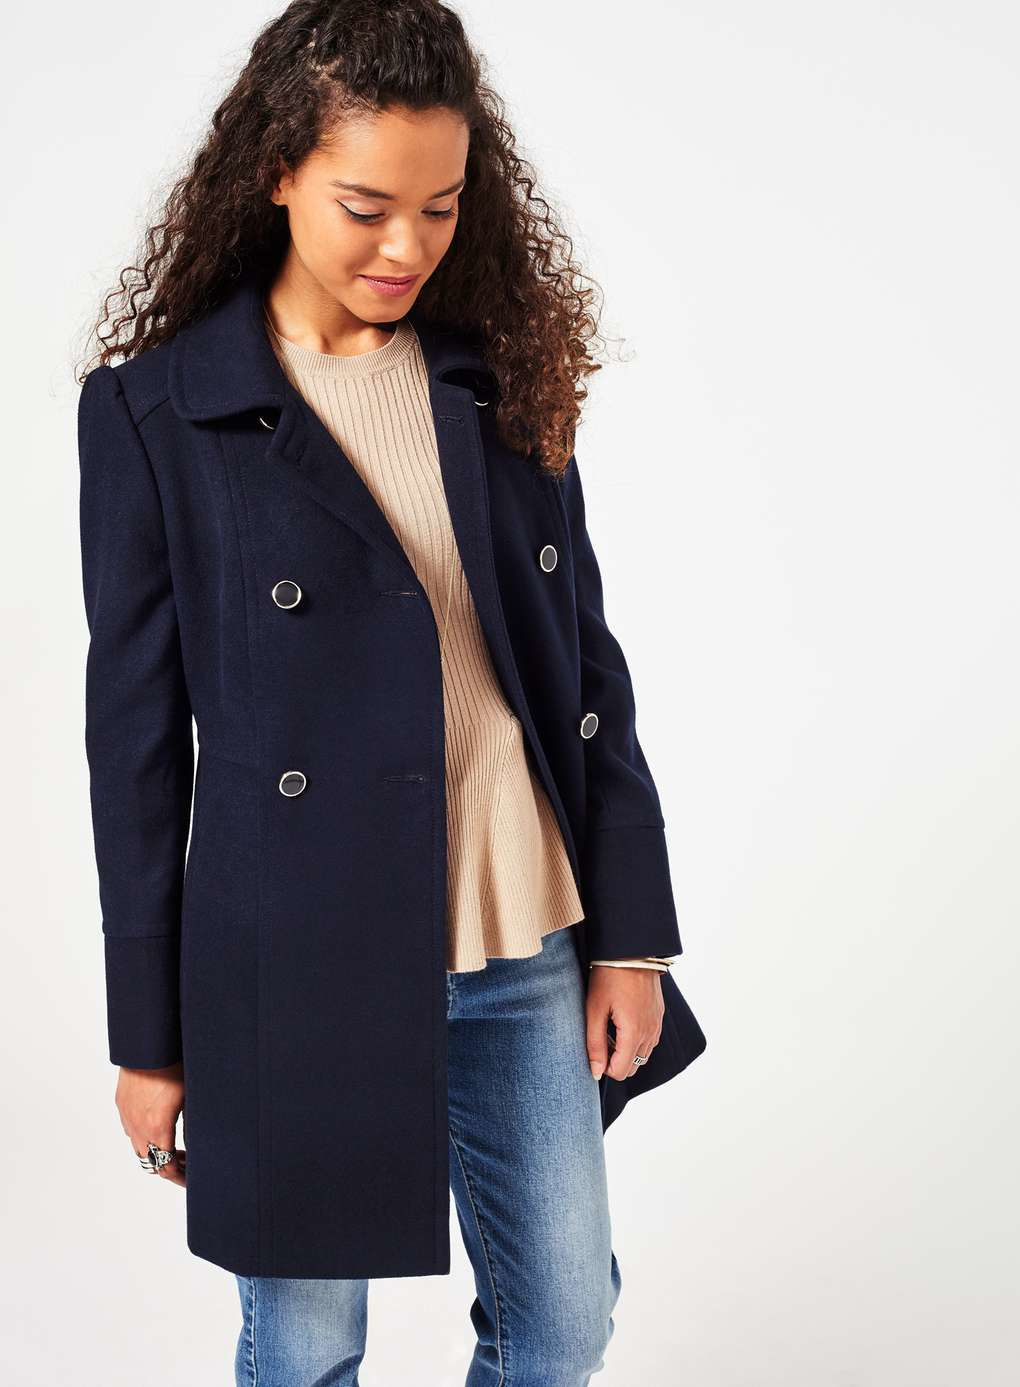 841f3a28511 Lyst - Miss Selfridge Petite Double Breasted Pea Coat in Blue